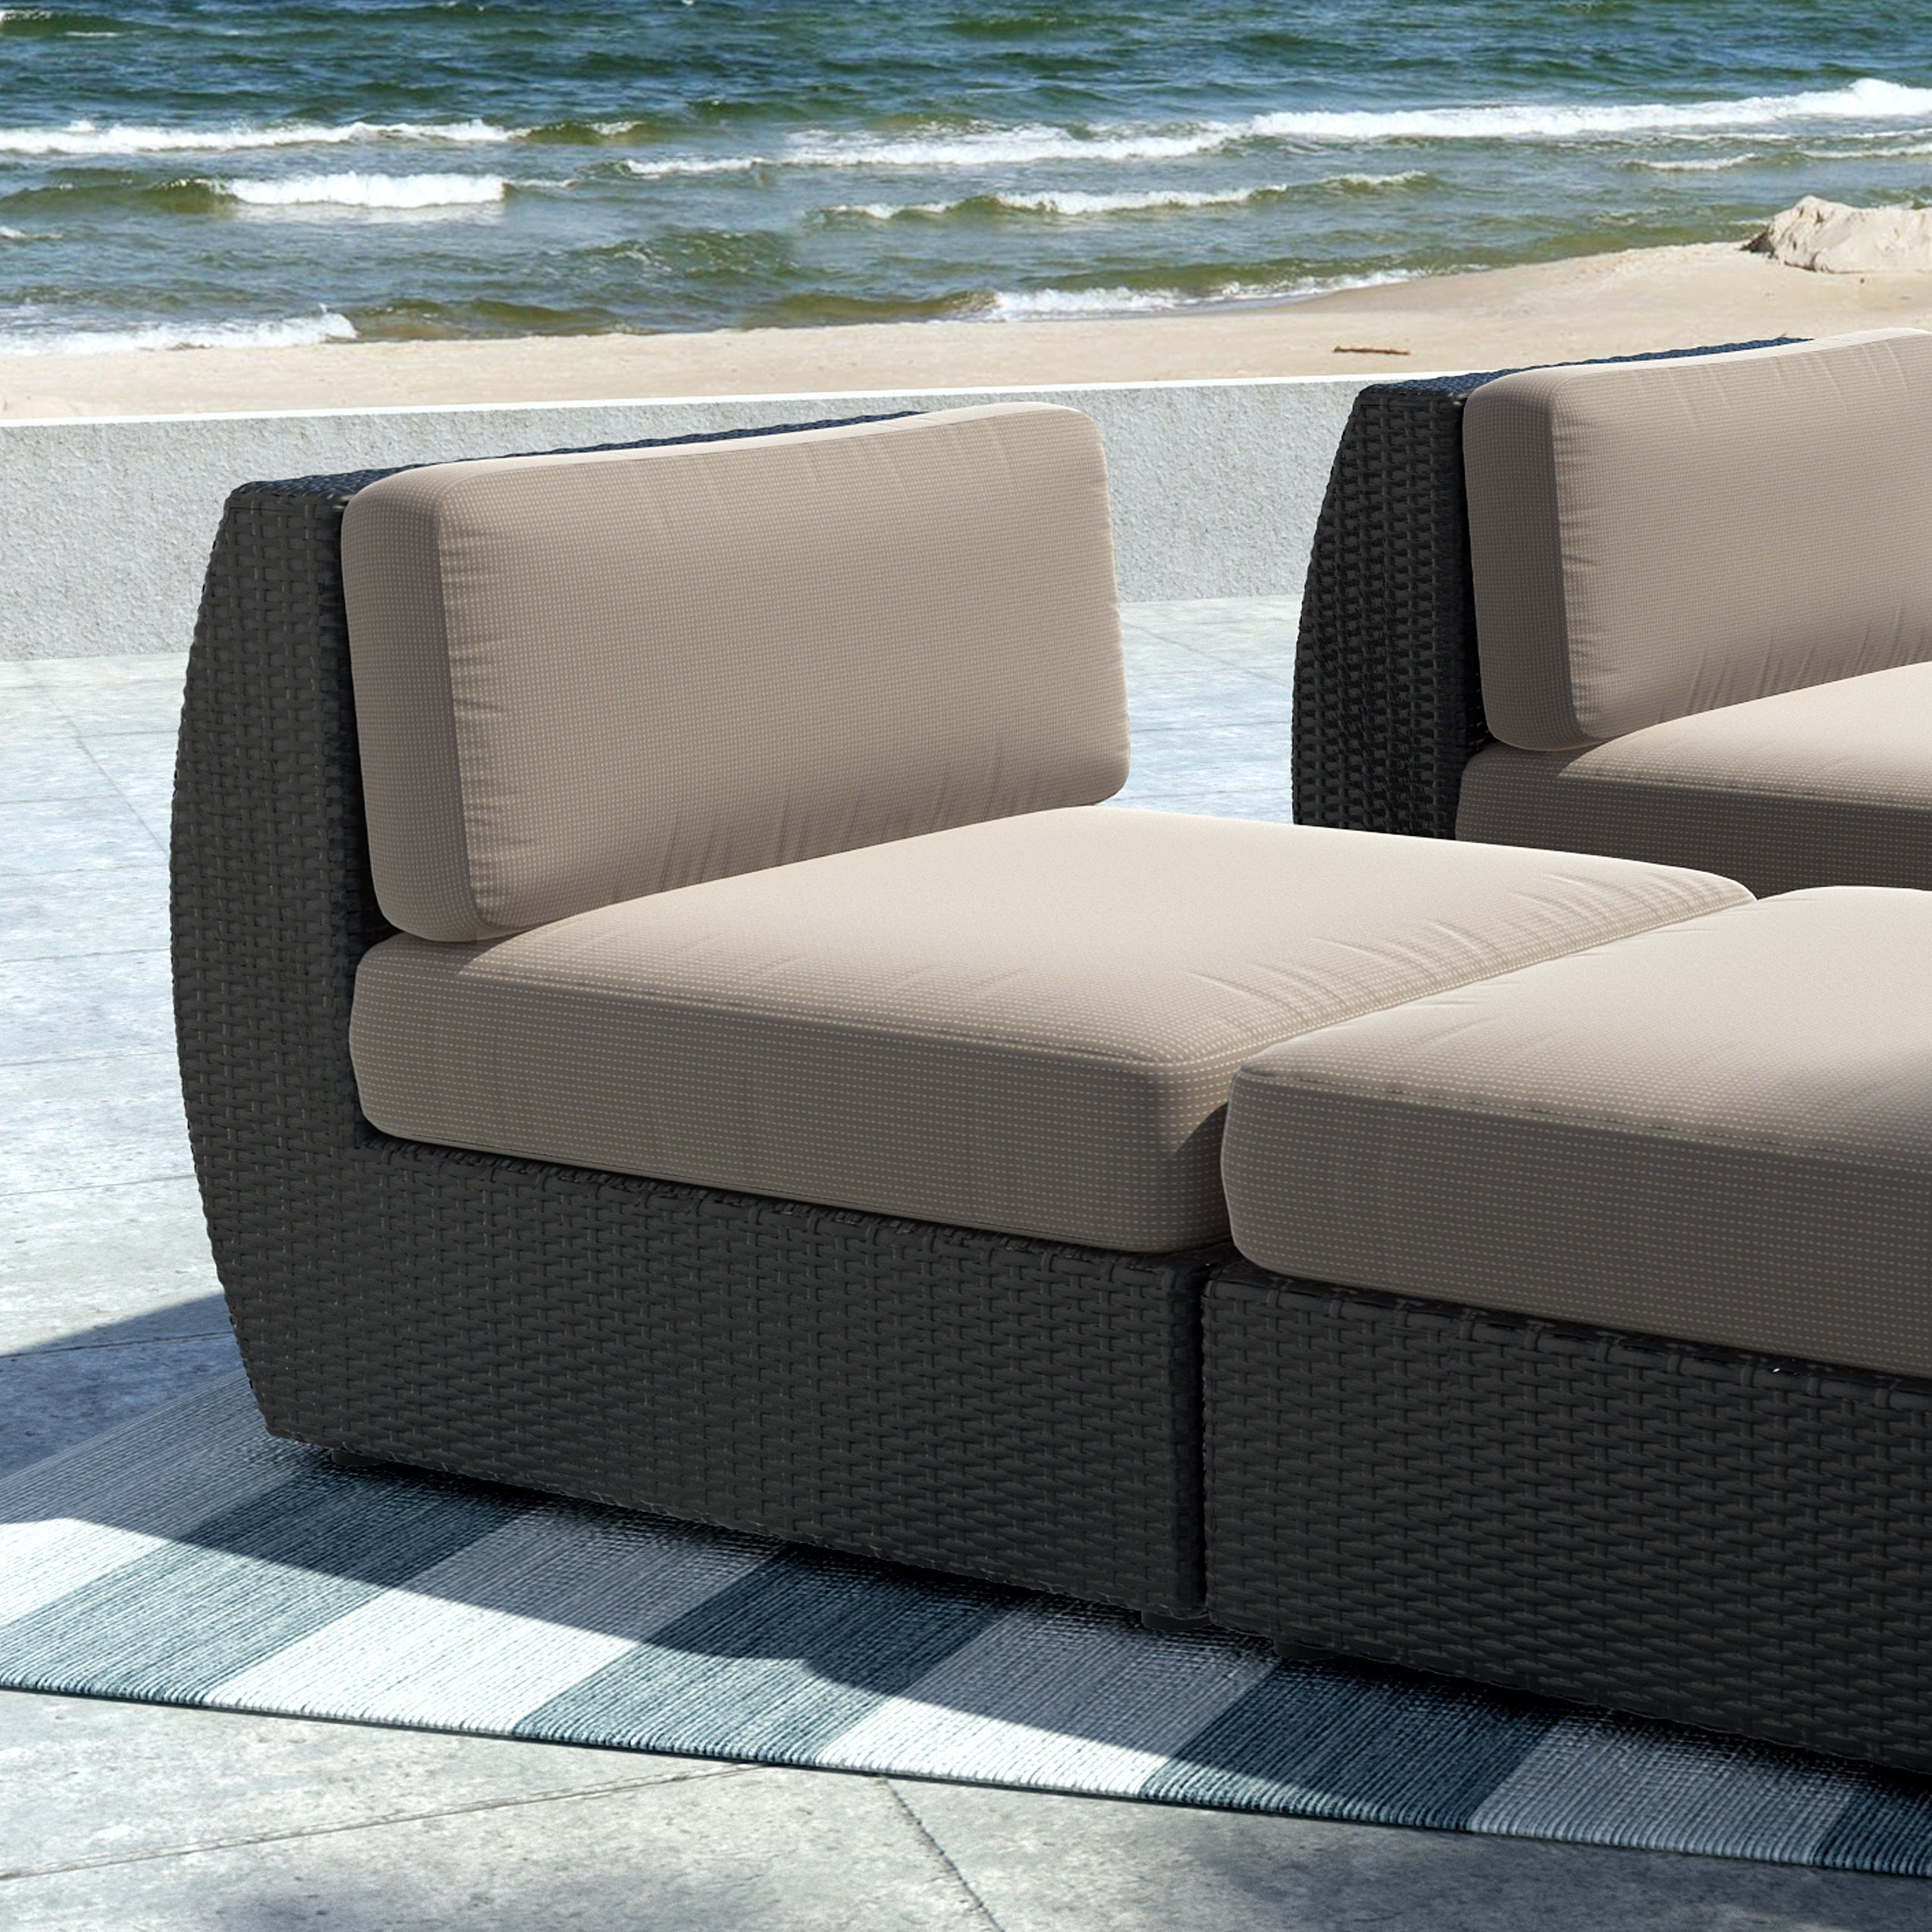 Wonderful Shop CorLiving Seattle Textured Black Weave Patio Middle Seat   Free  Shipping Today   Overstock.com   8960156